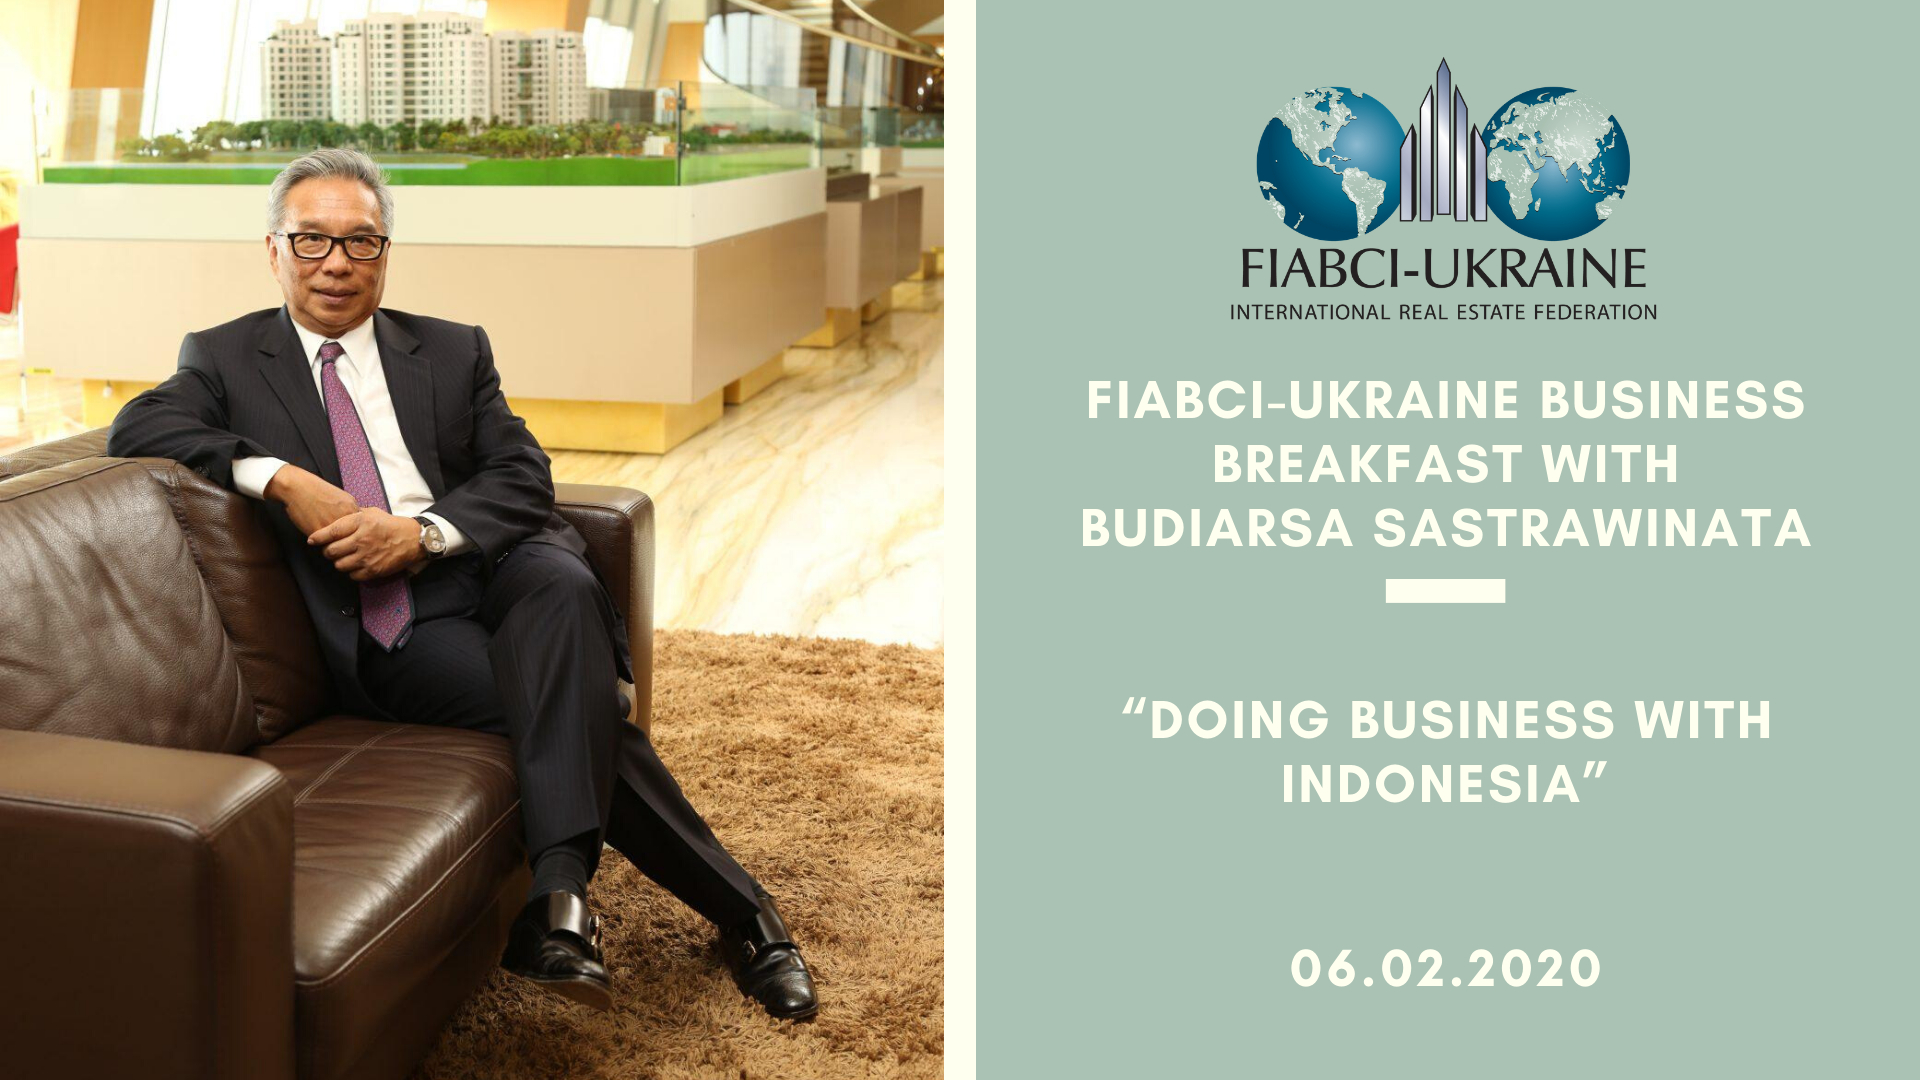 Doing business with Indonesia